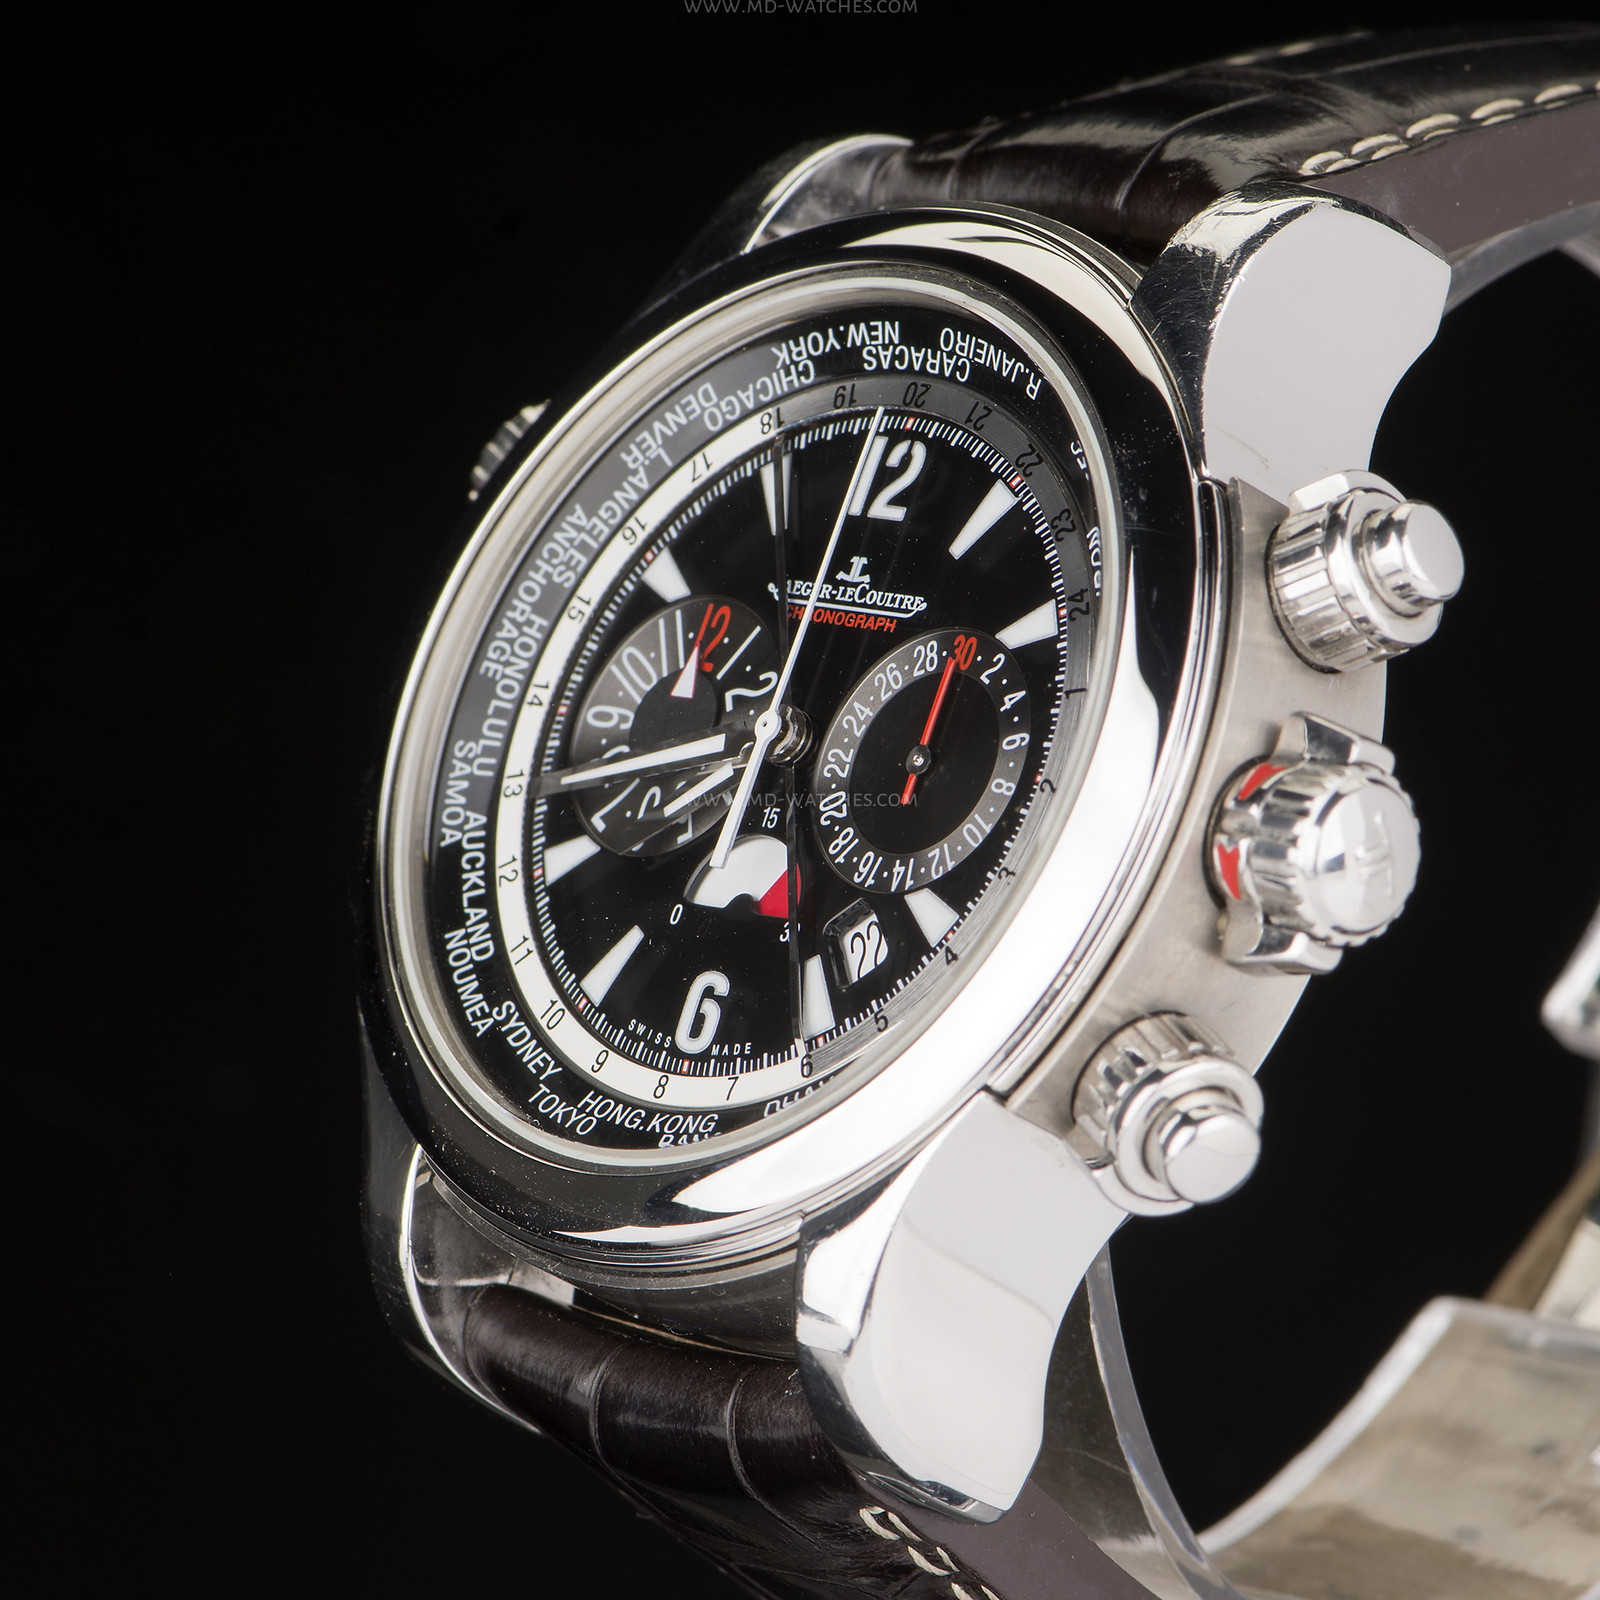 Jaeger LeCoultre Master Compressor Extreme World Chronograph 150.8.22 1